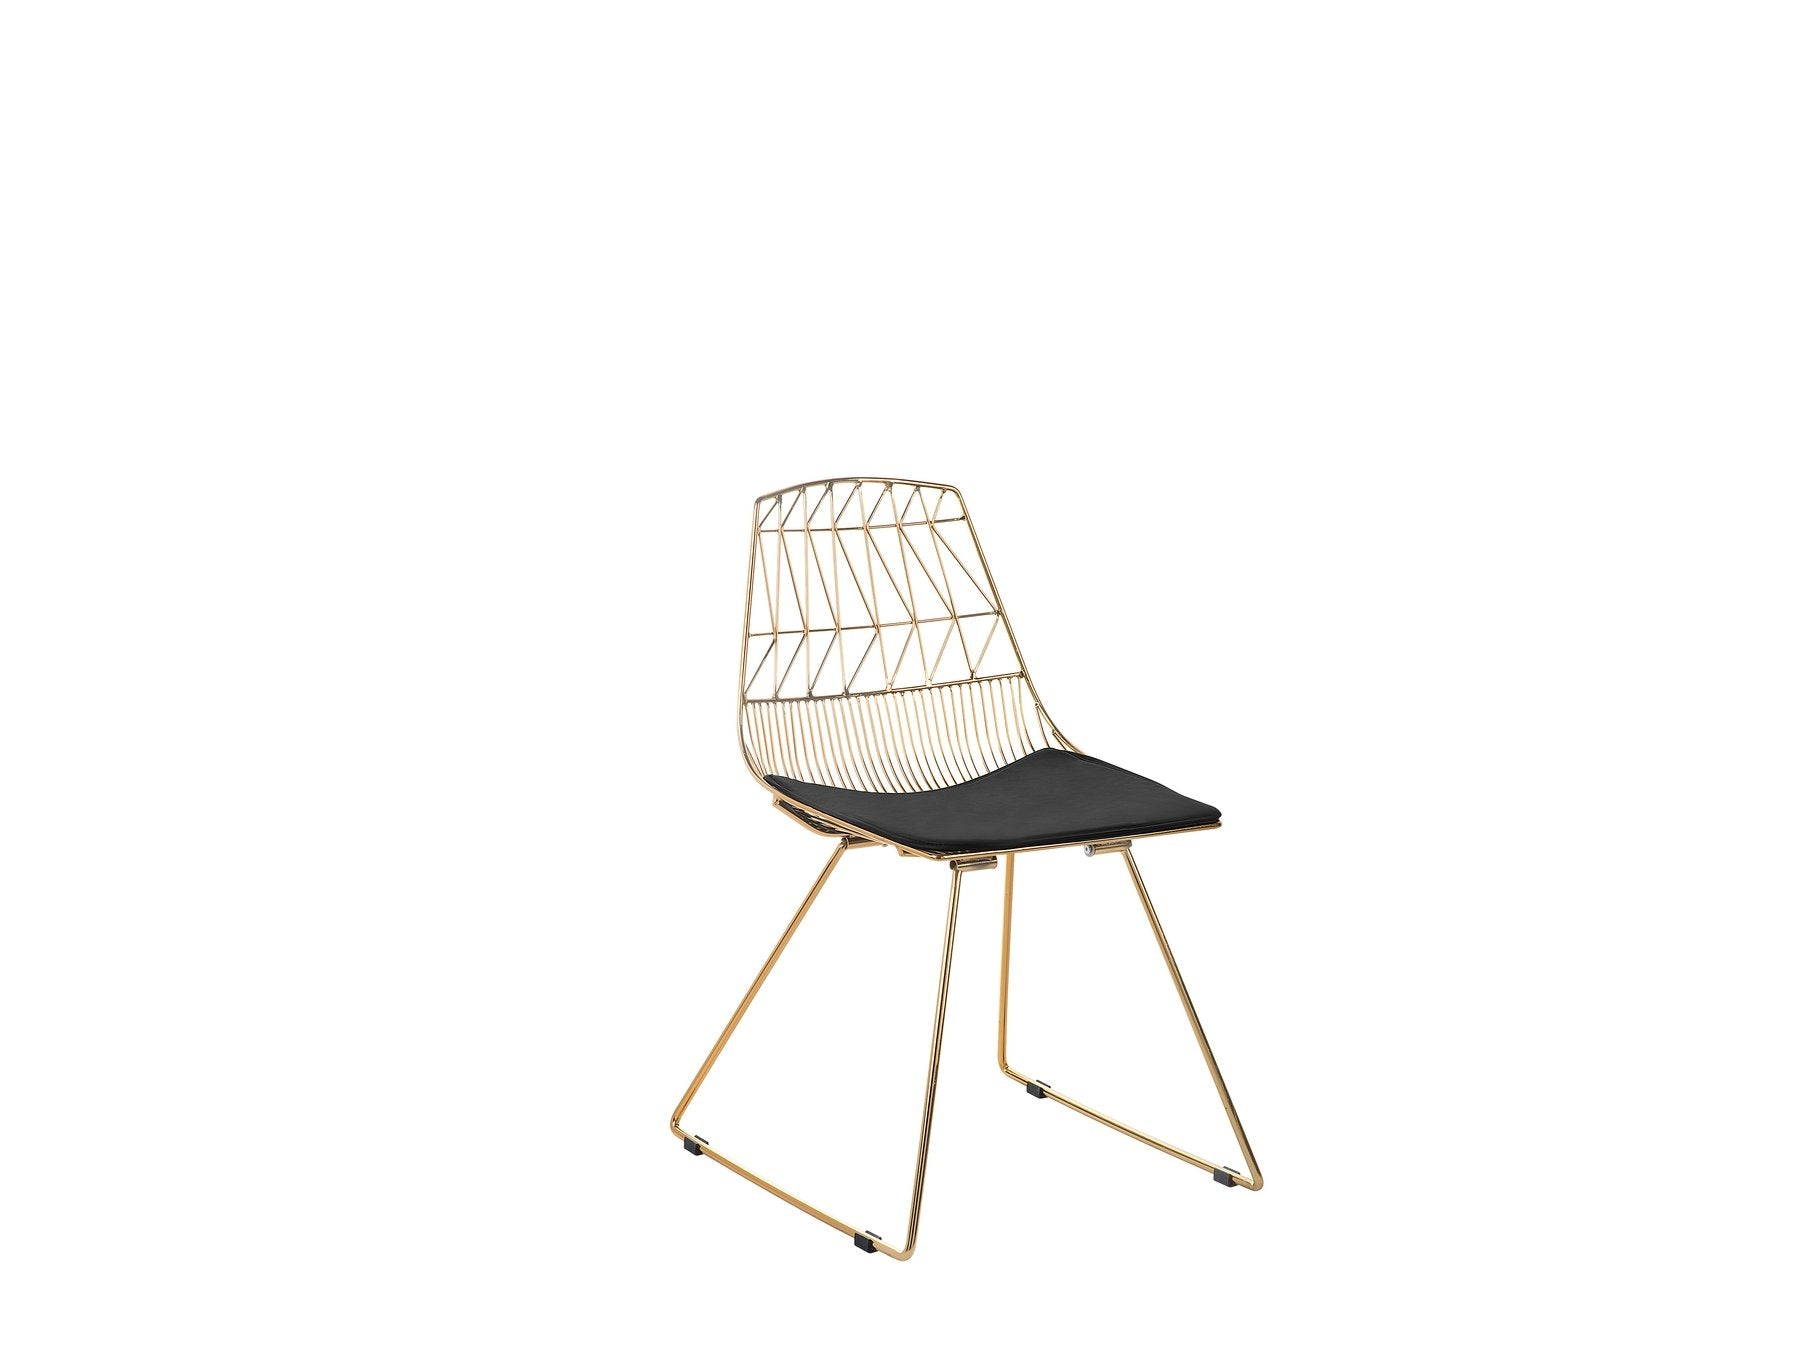 Golden Brass Dining Chair Gold . Black . Silver Orion Geometric Metal Counter Height 75 cm Bar Stool Chair High Back - Pebble & Leaf Homefurniture